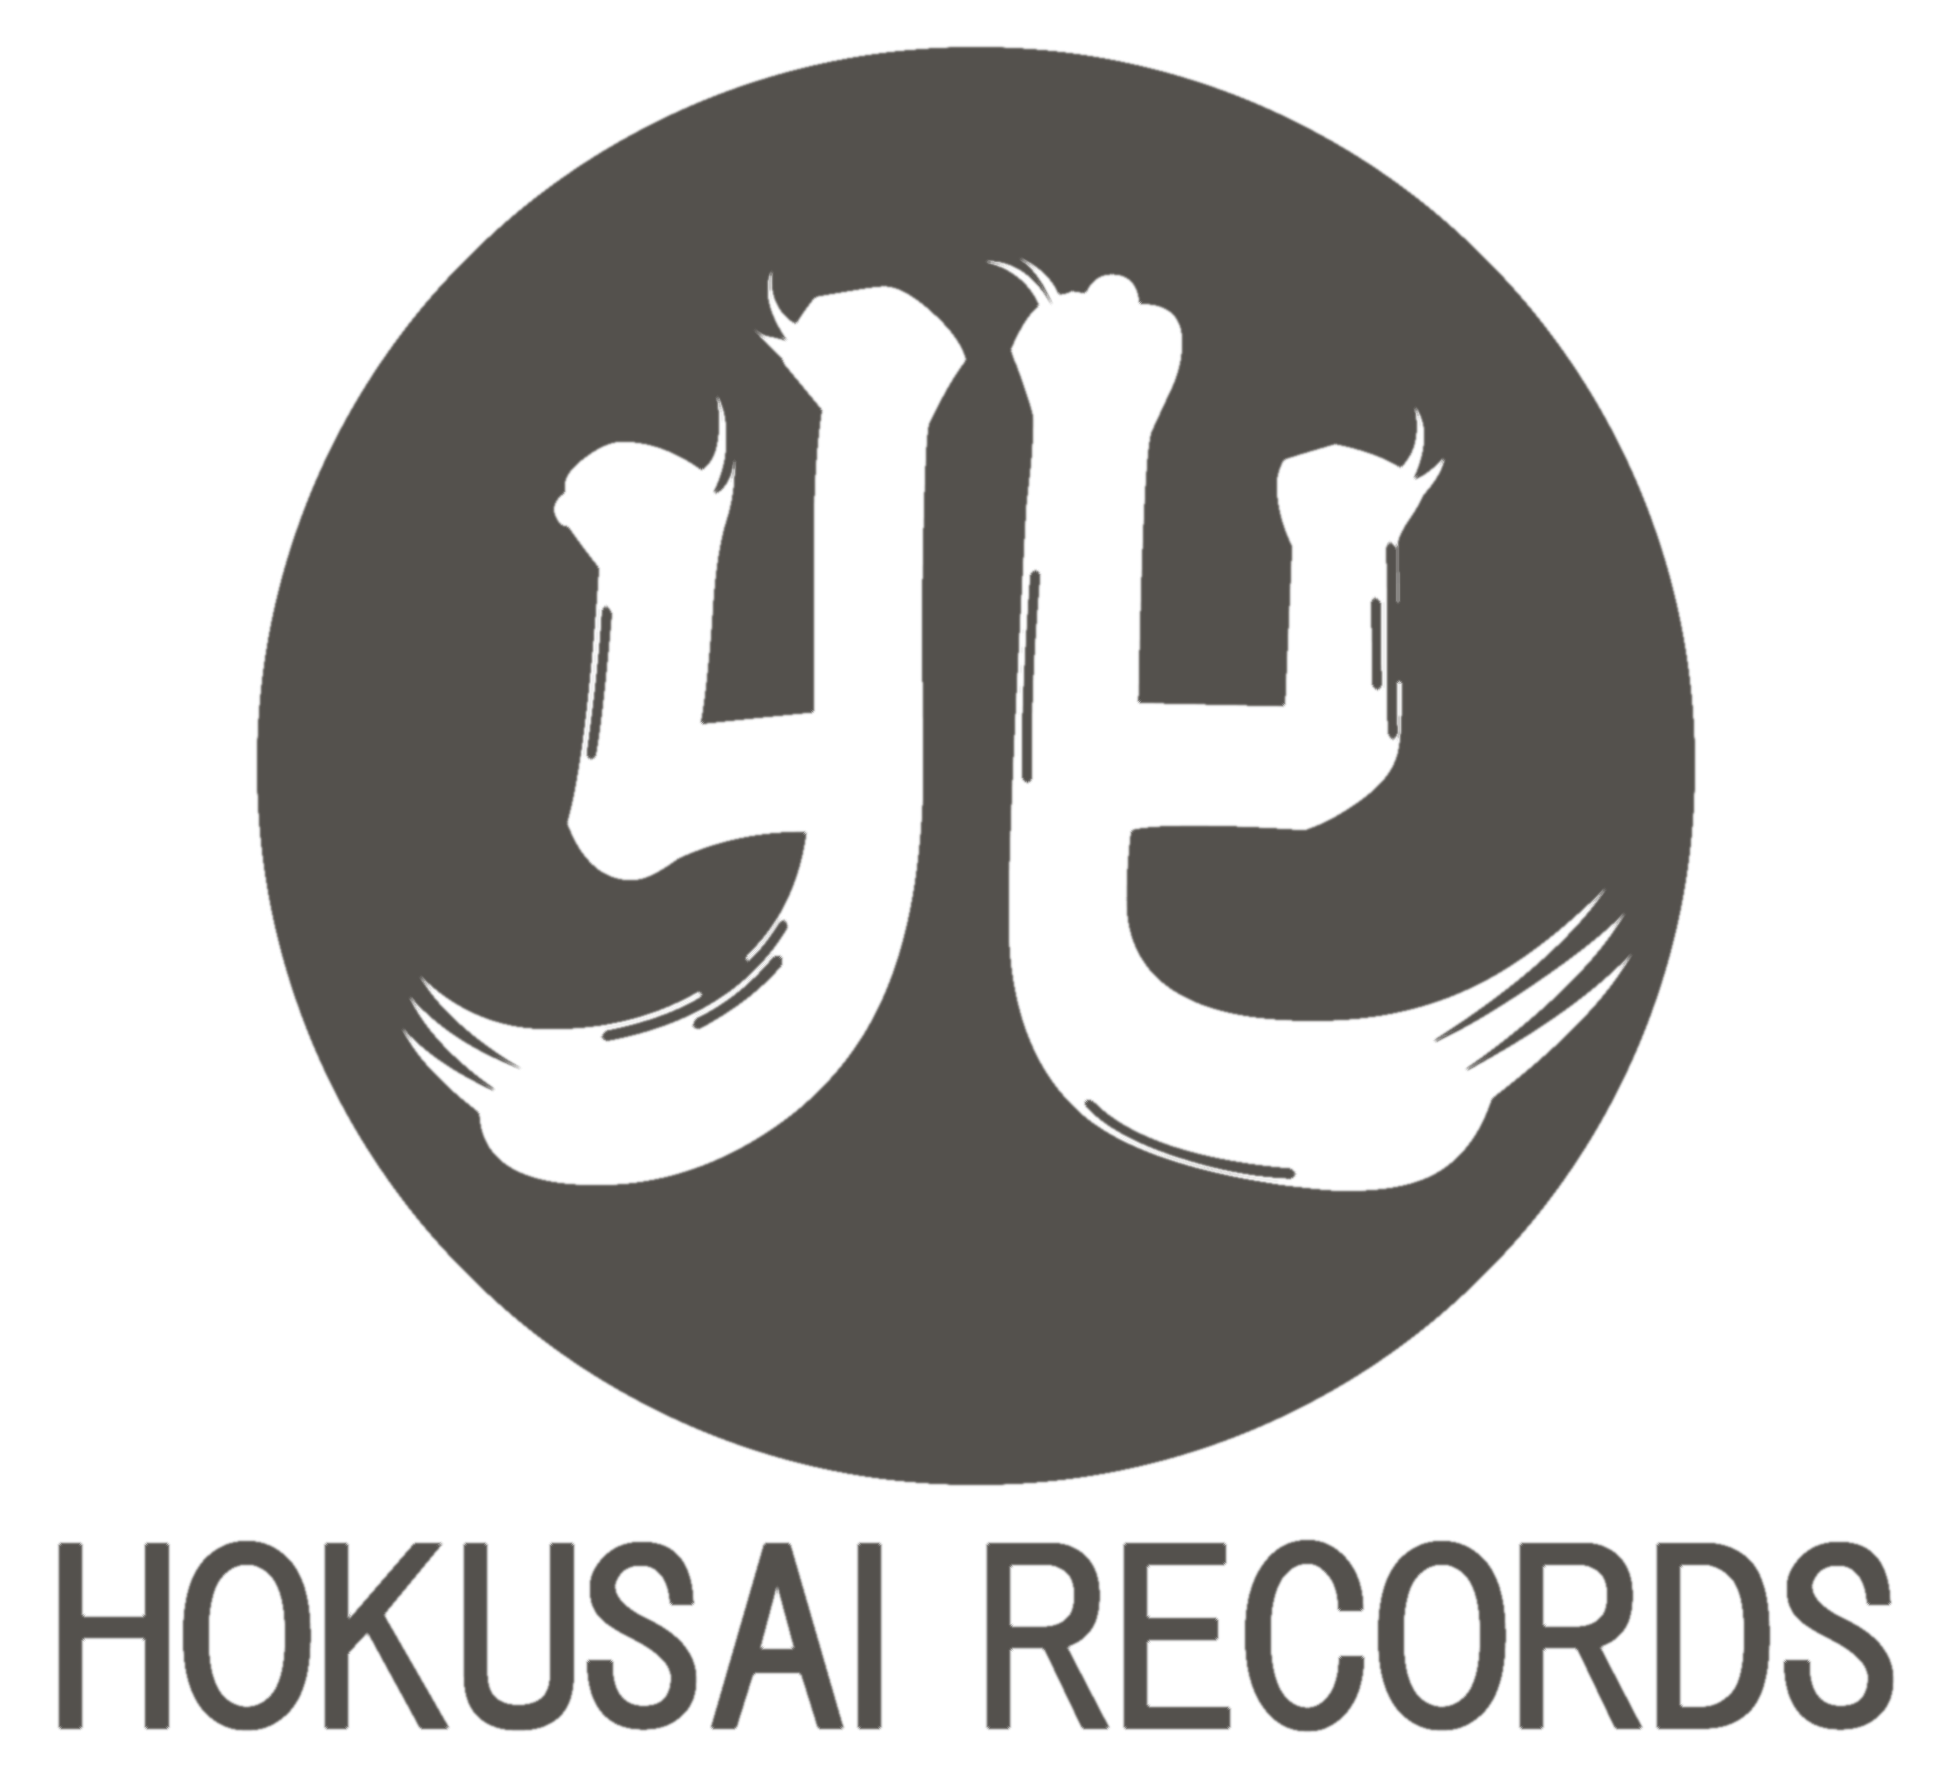 HOKUSAI RECORDS